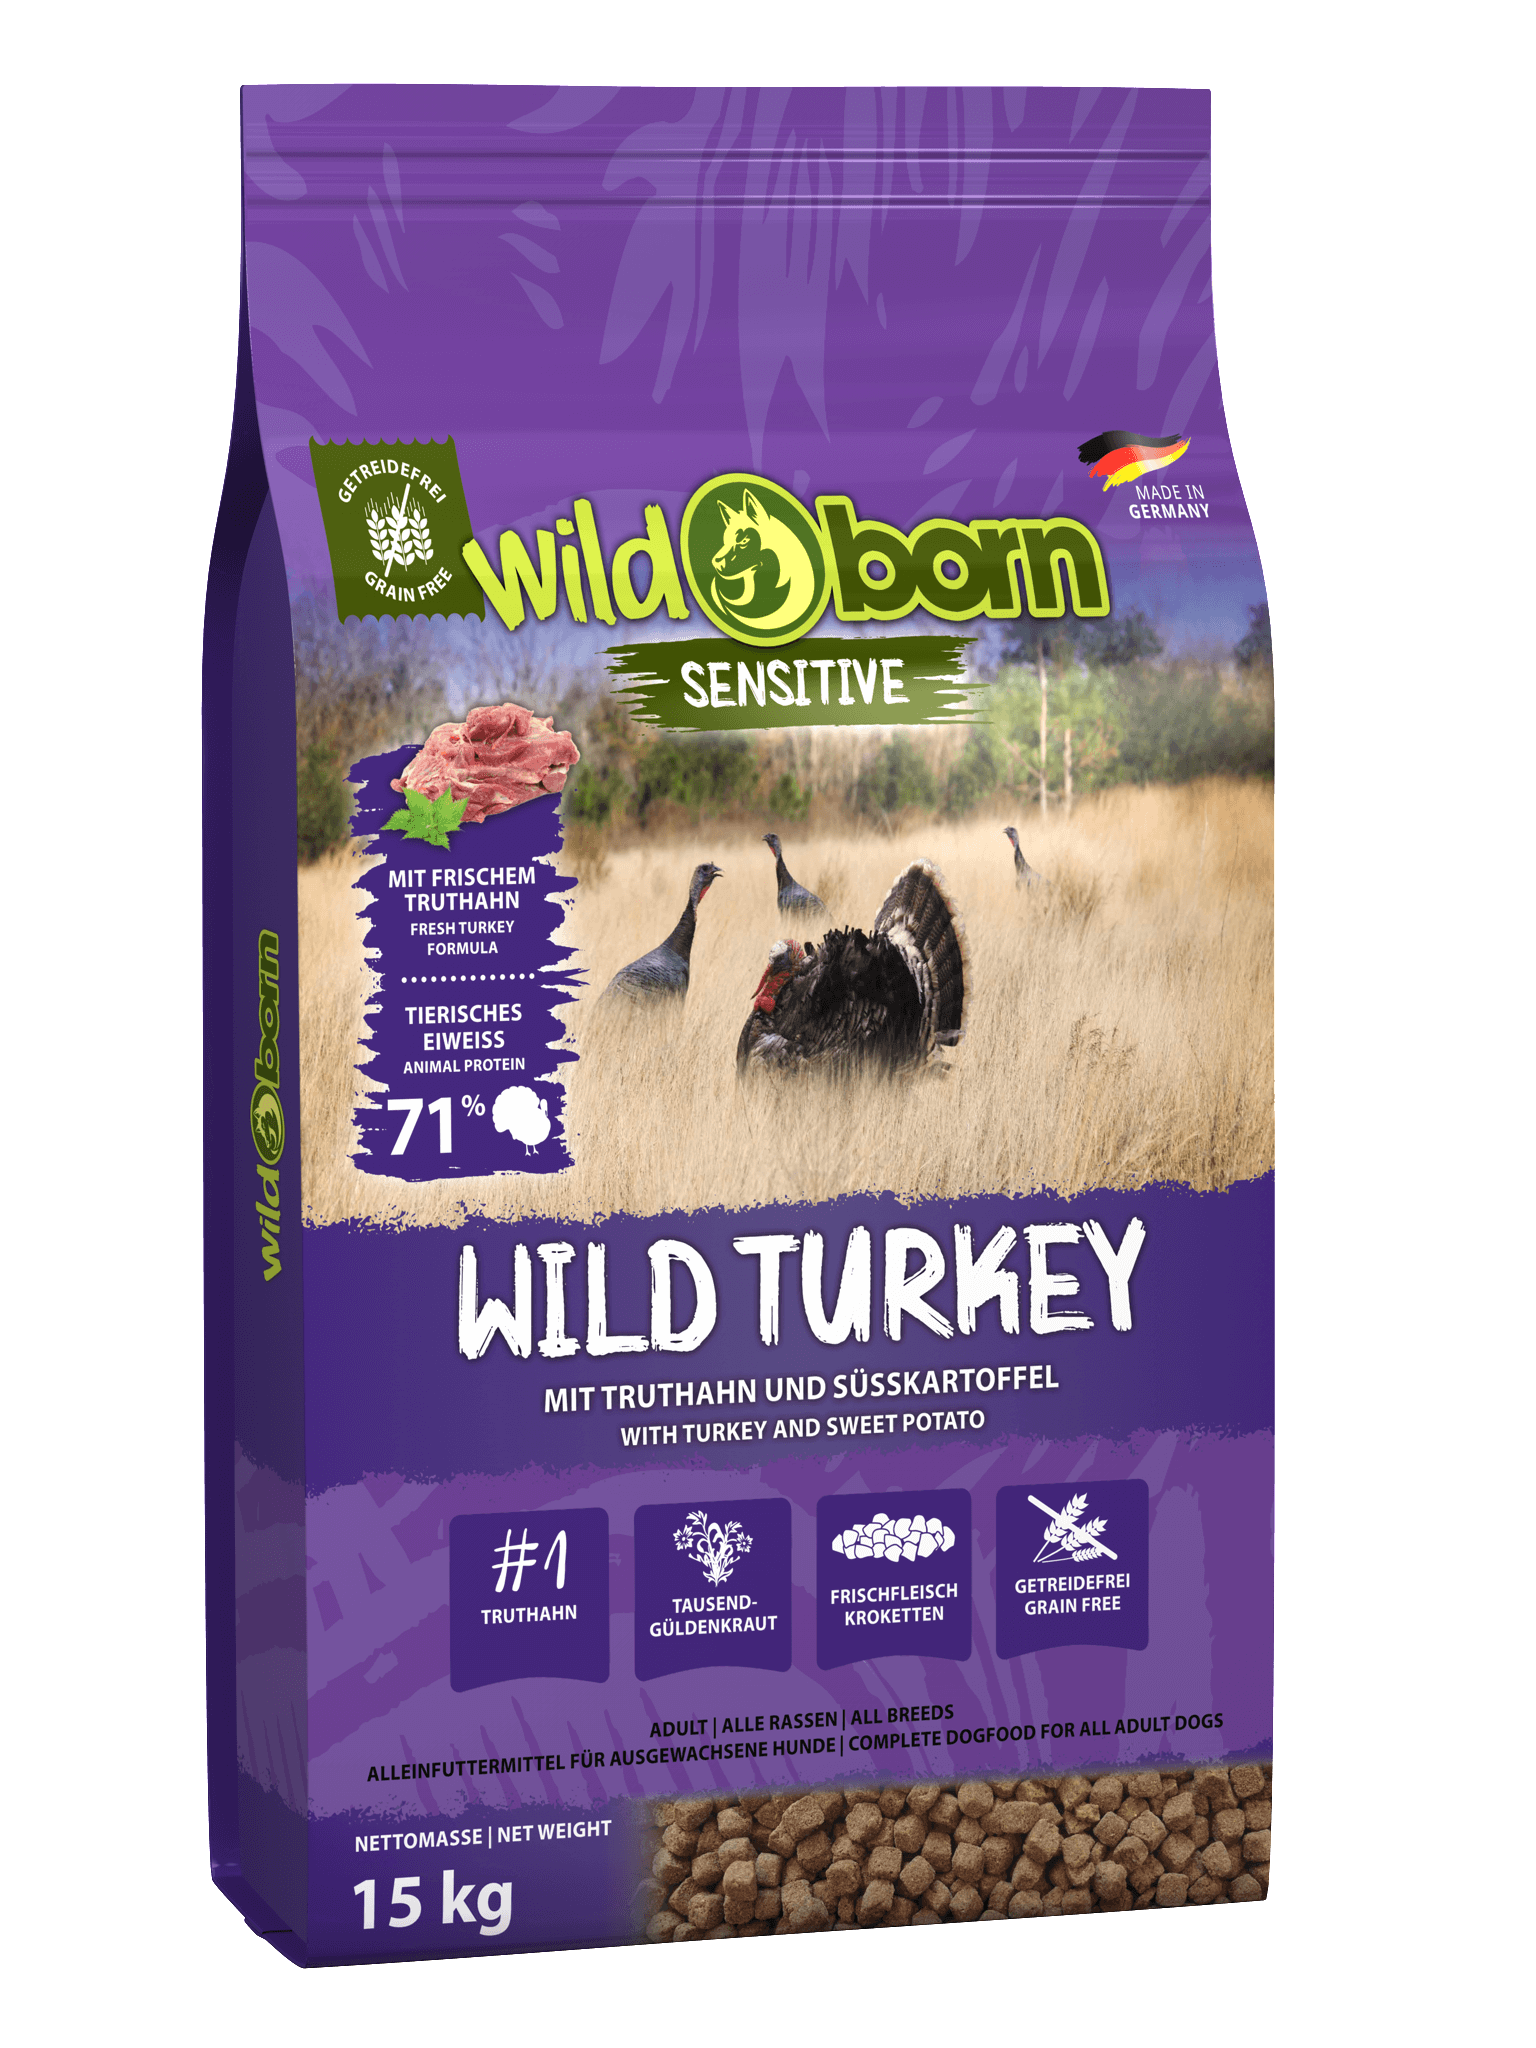 WILDBORN Wild Turkey - mit Truthahn